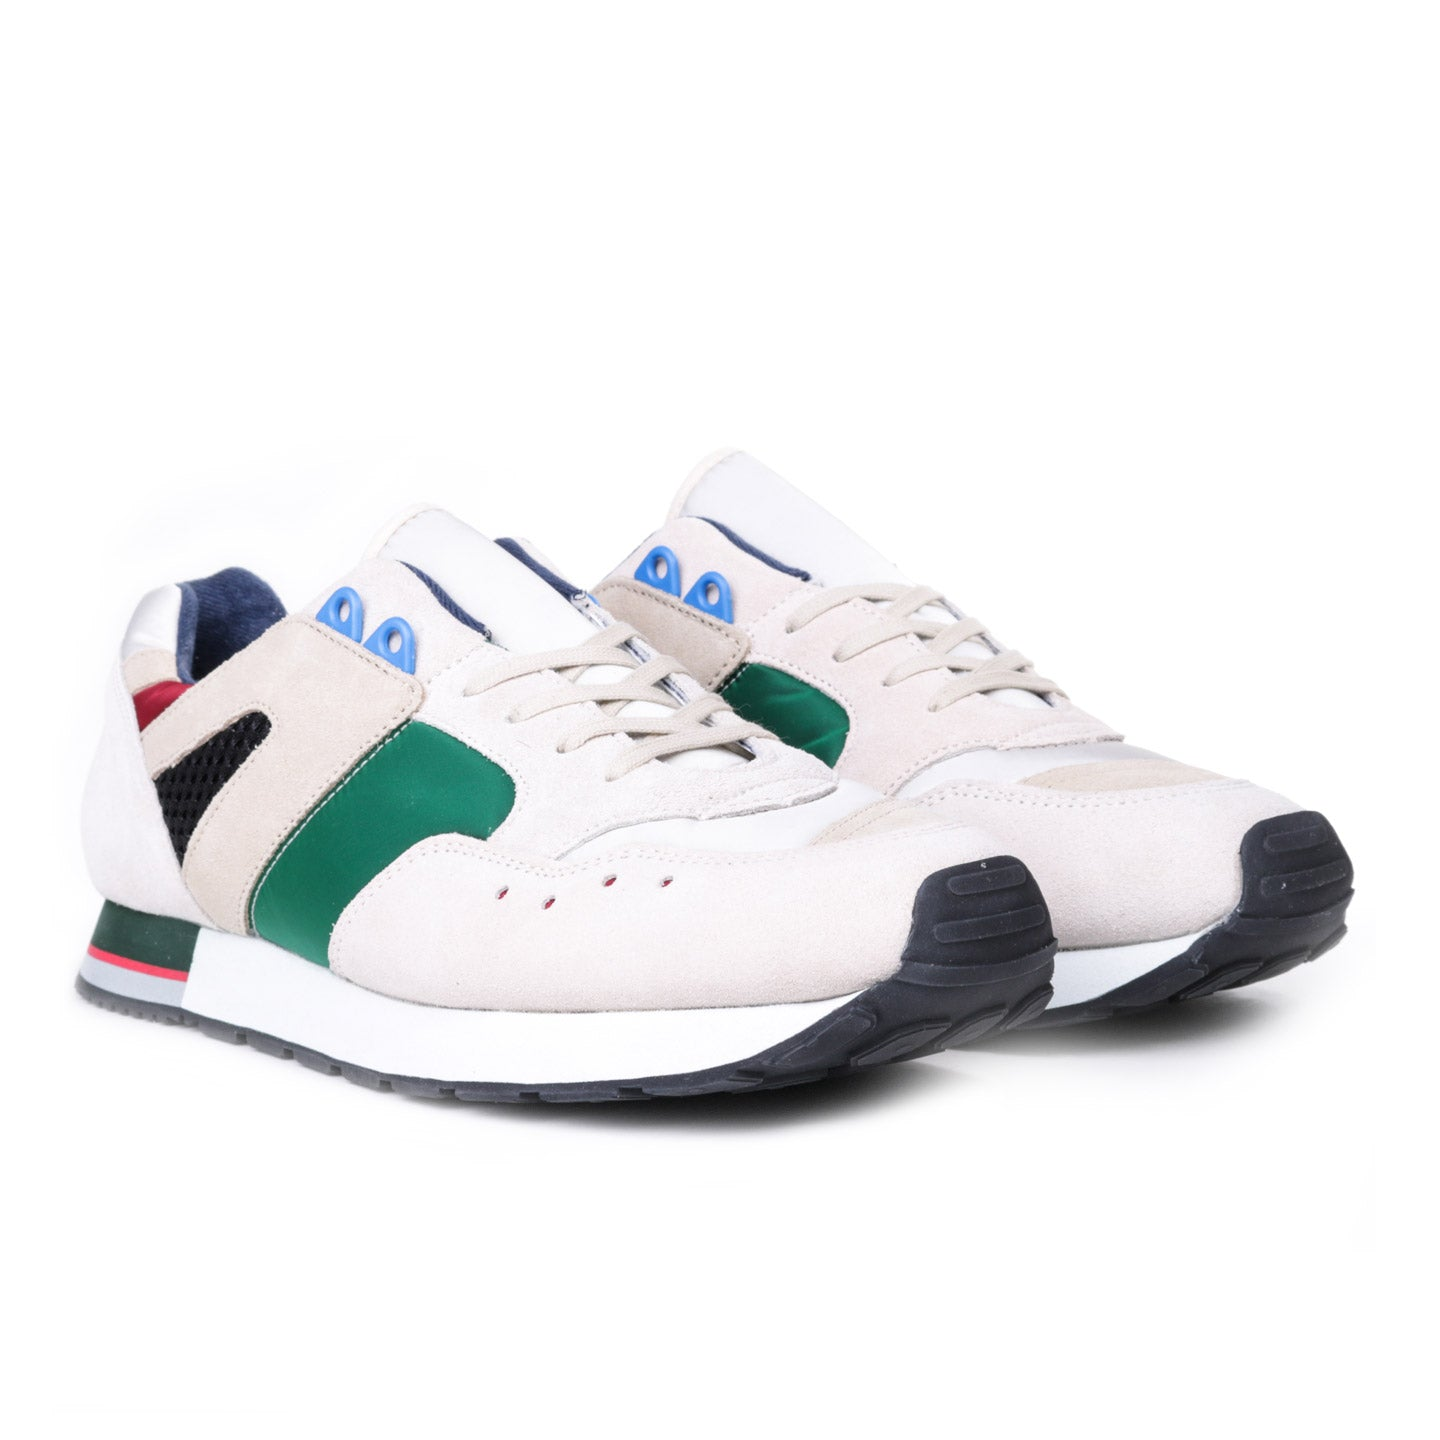 REPRODUCTION OF FOUND FRENCH MILITARY TRAINER GREEN / OFF WHITE